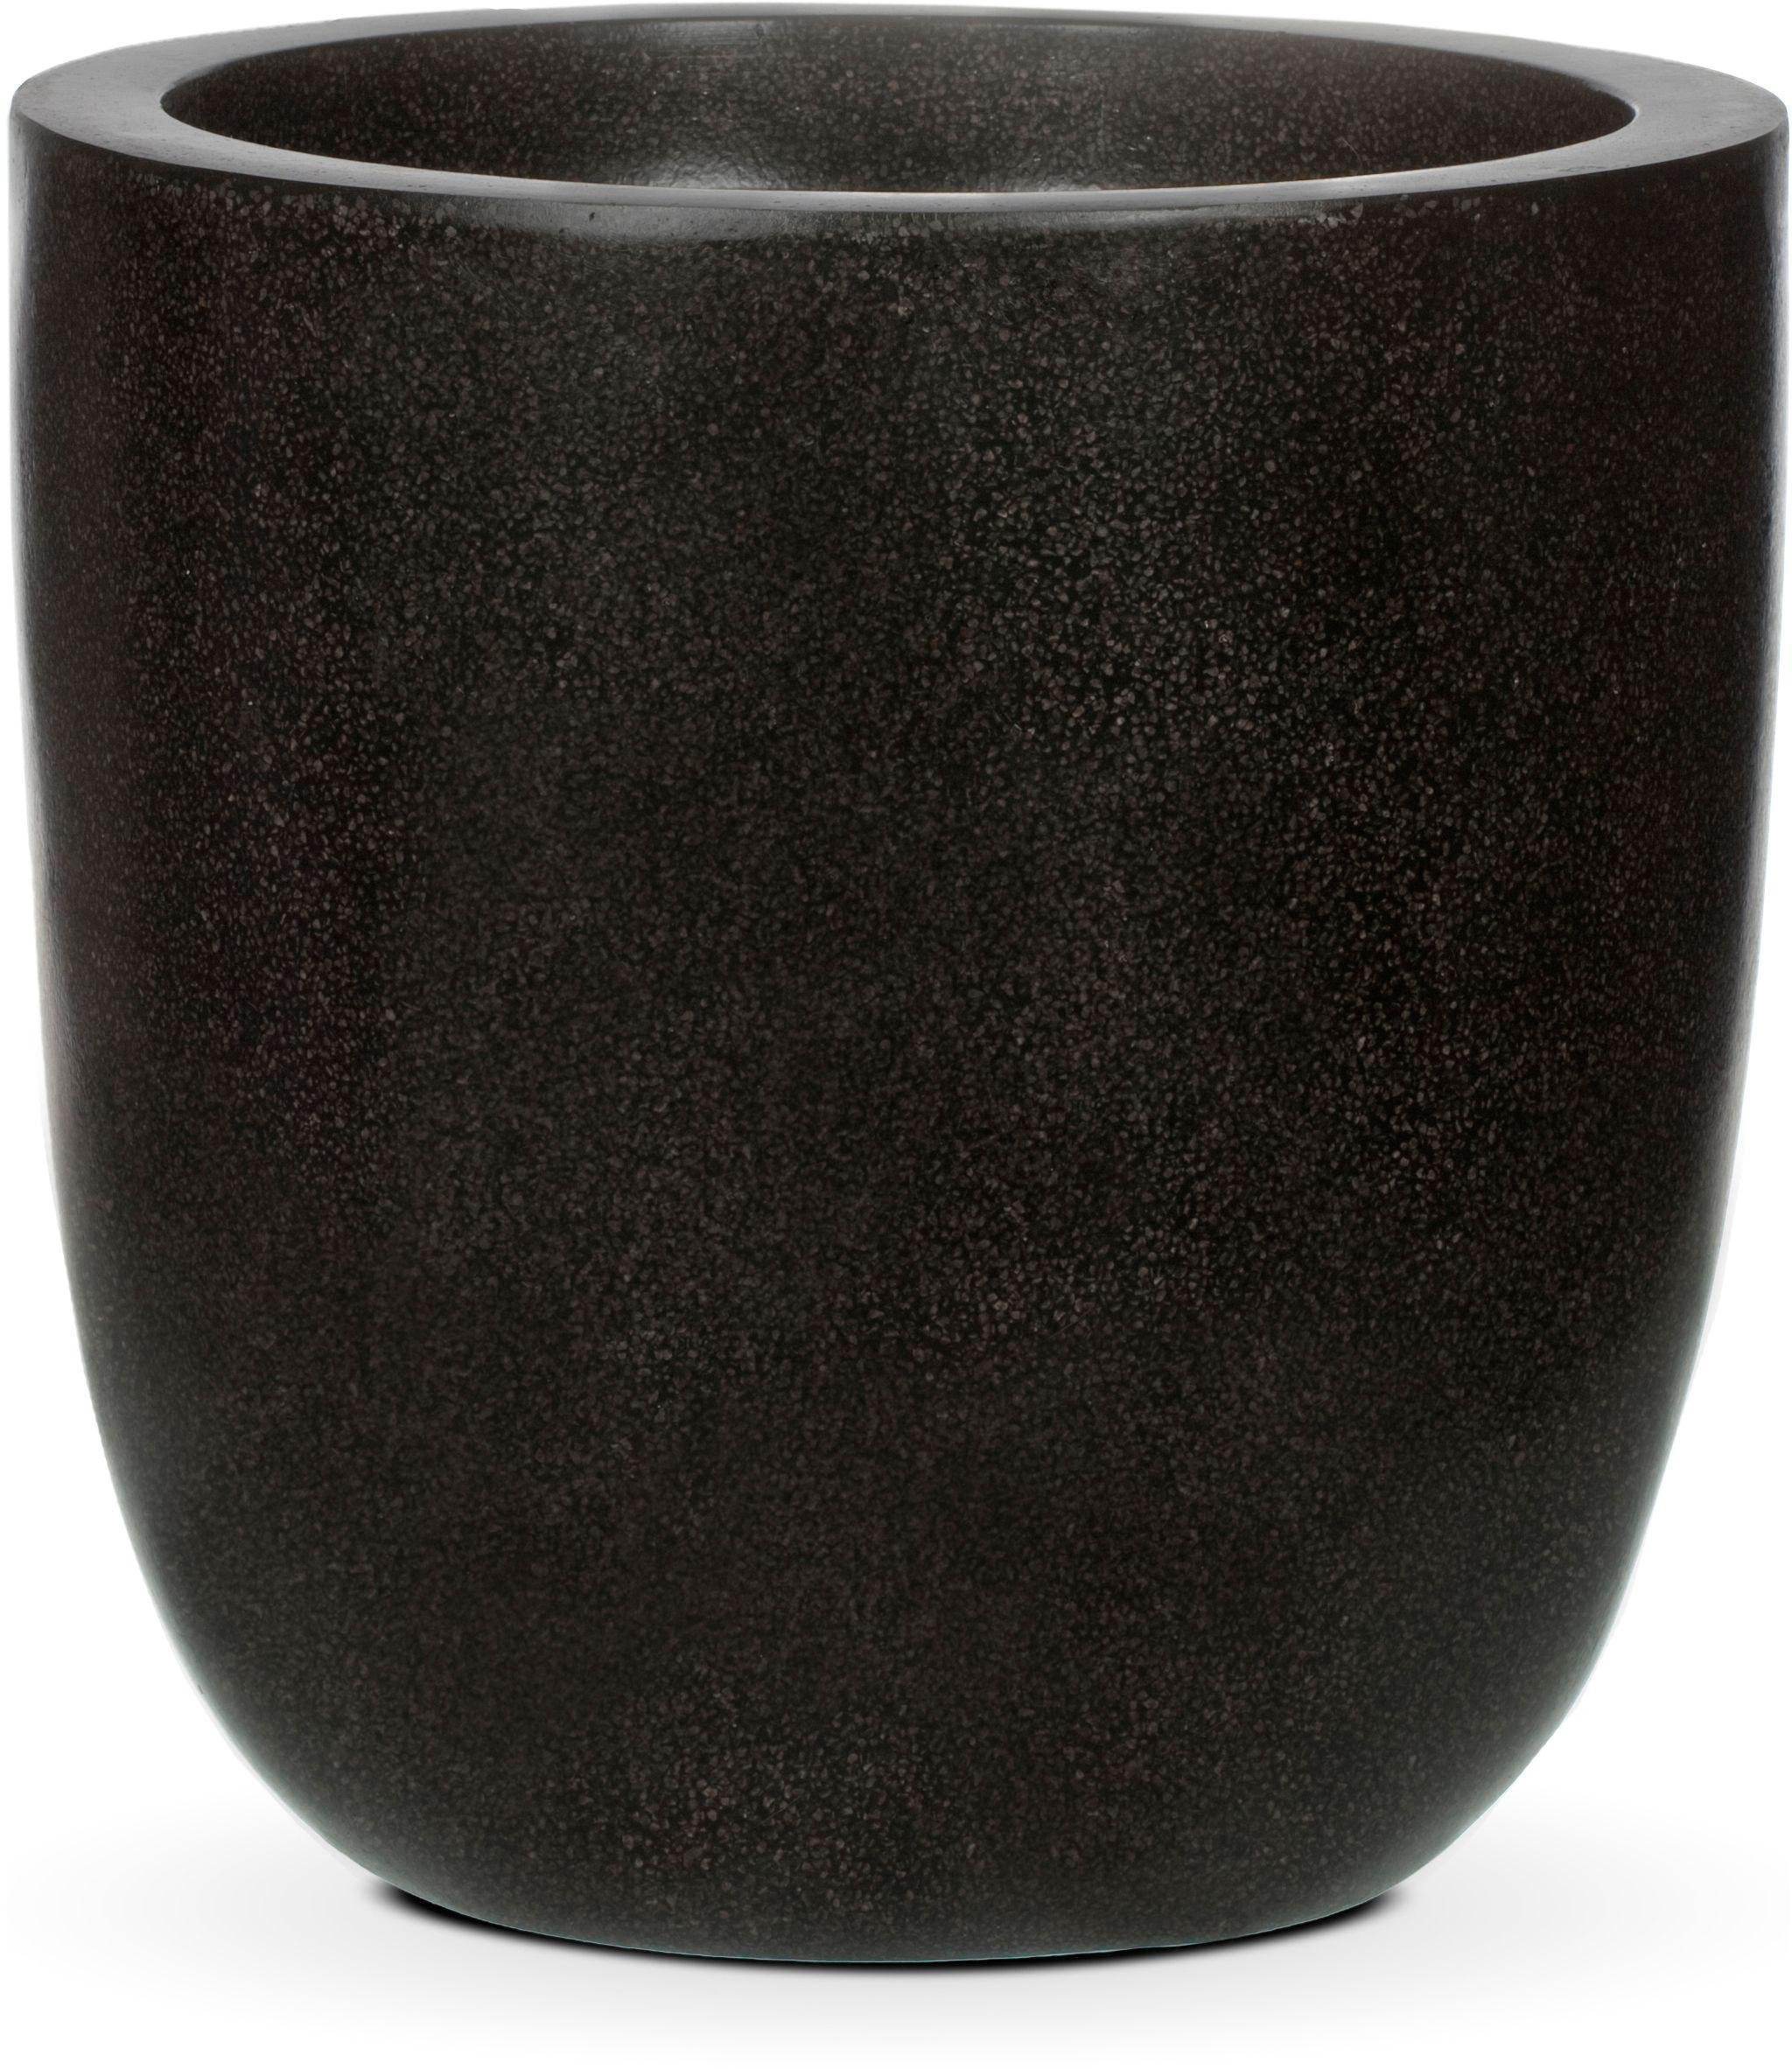 Image of Capi Lux Black Planter Egg - 28 x 26cm.